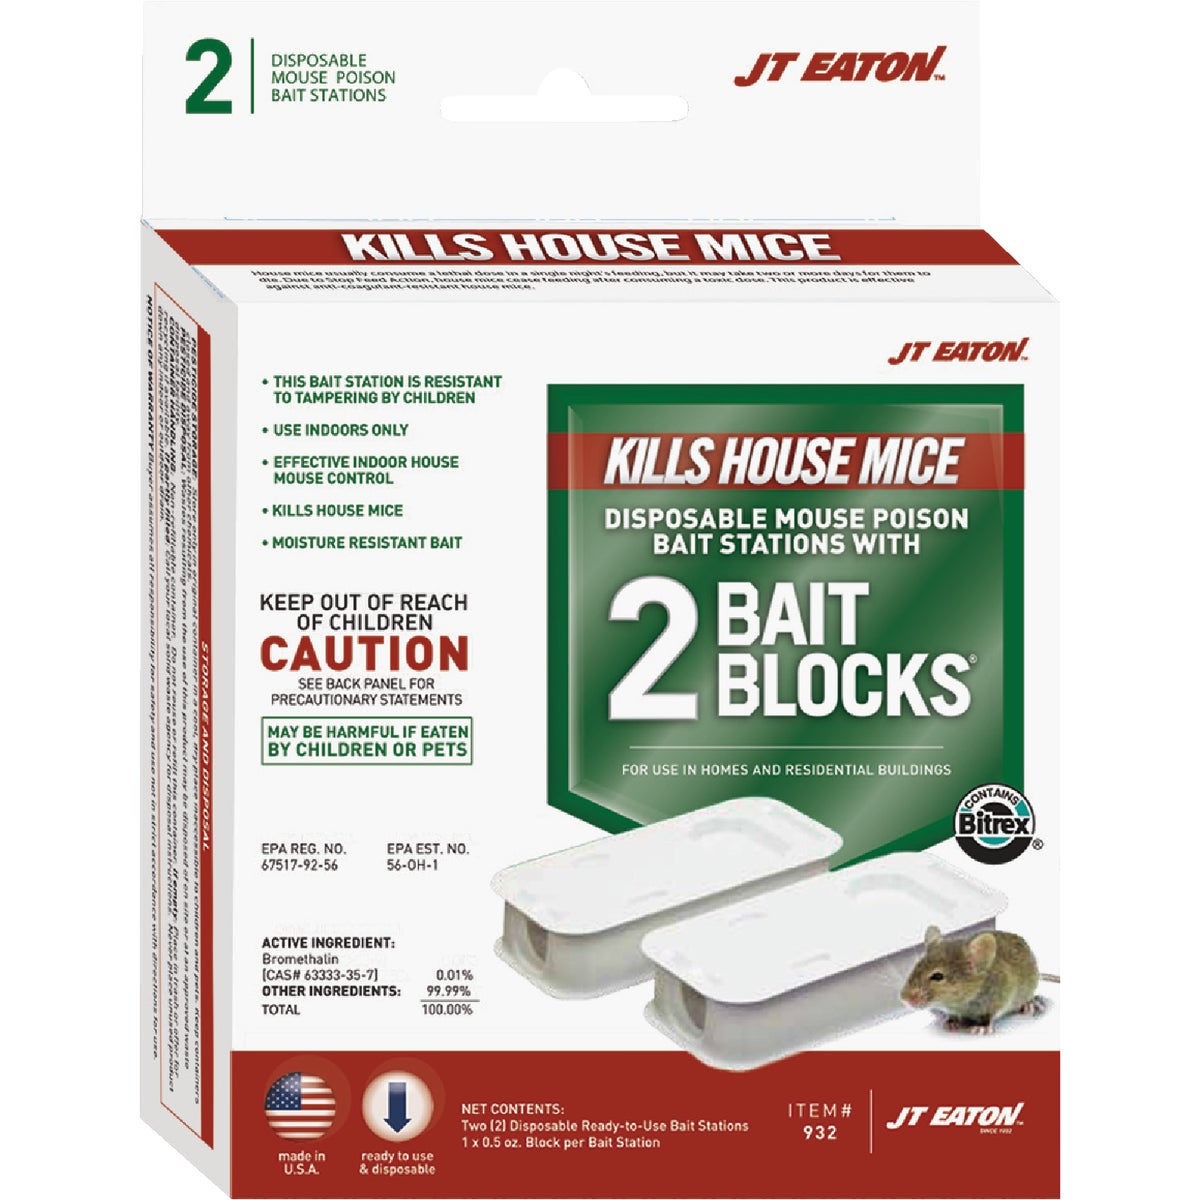 2PK MOUSE BAIT STATION - 932 by Jt Eaton & Co